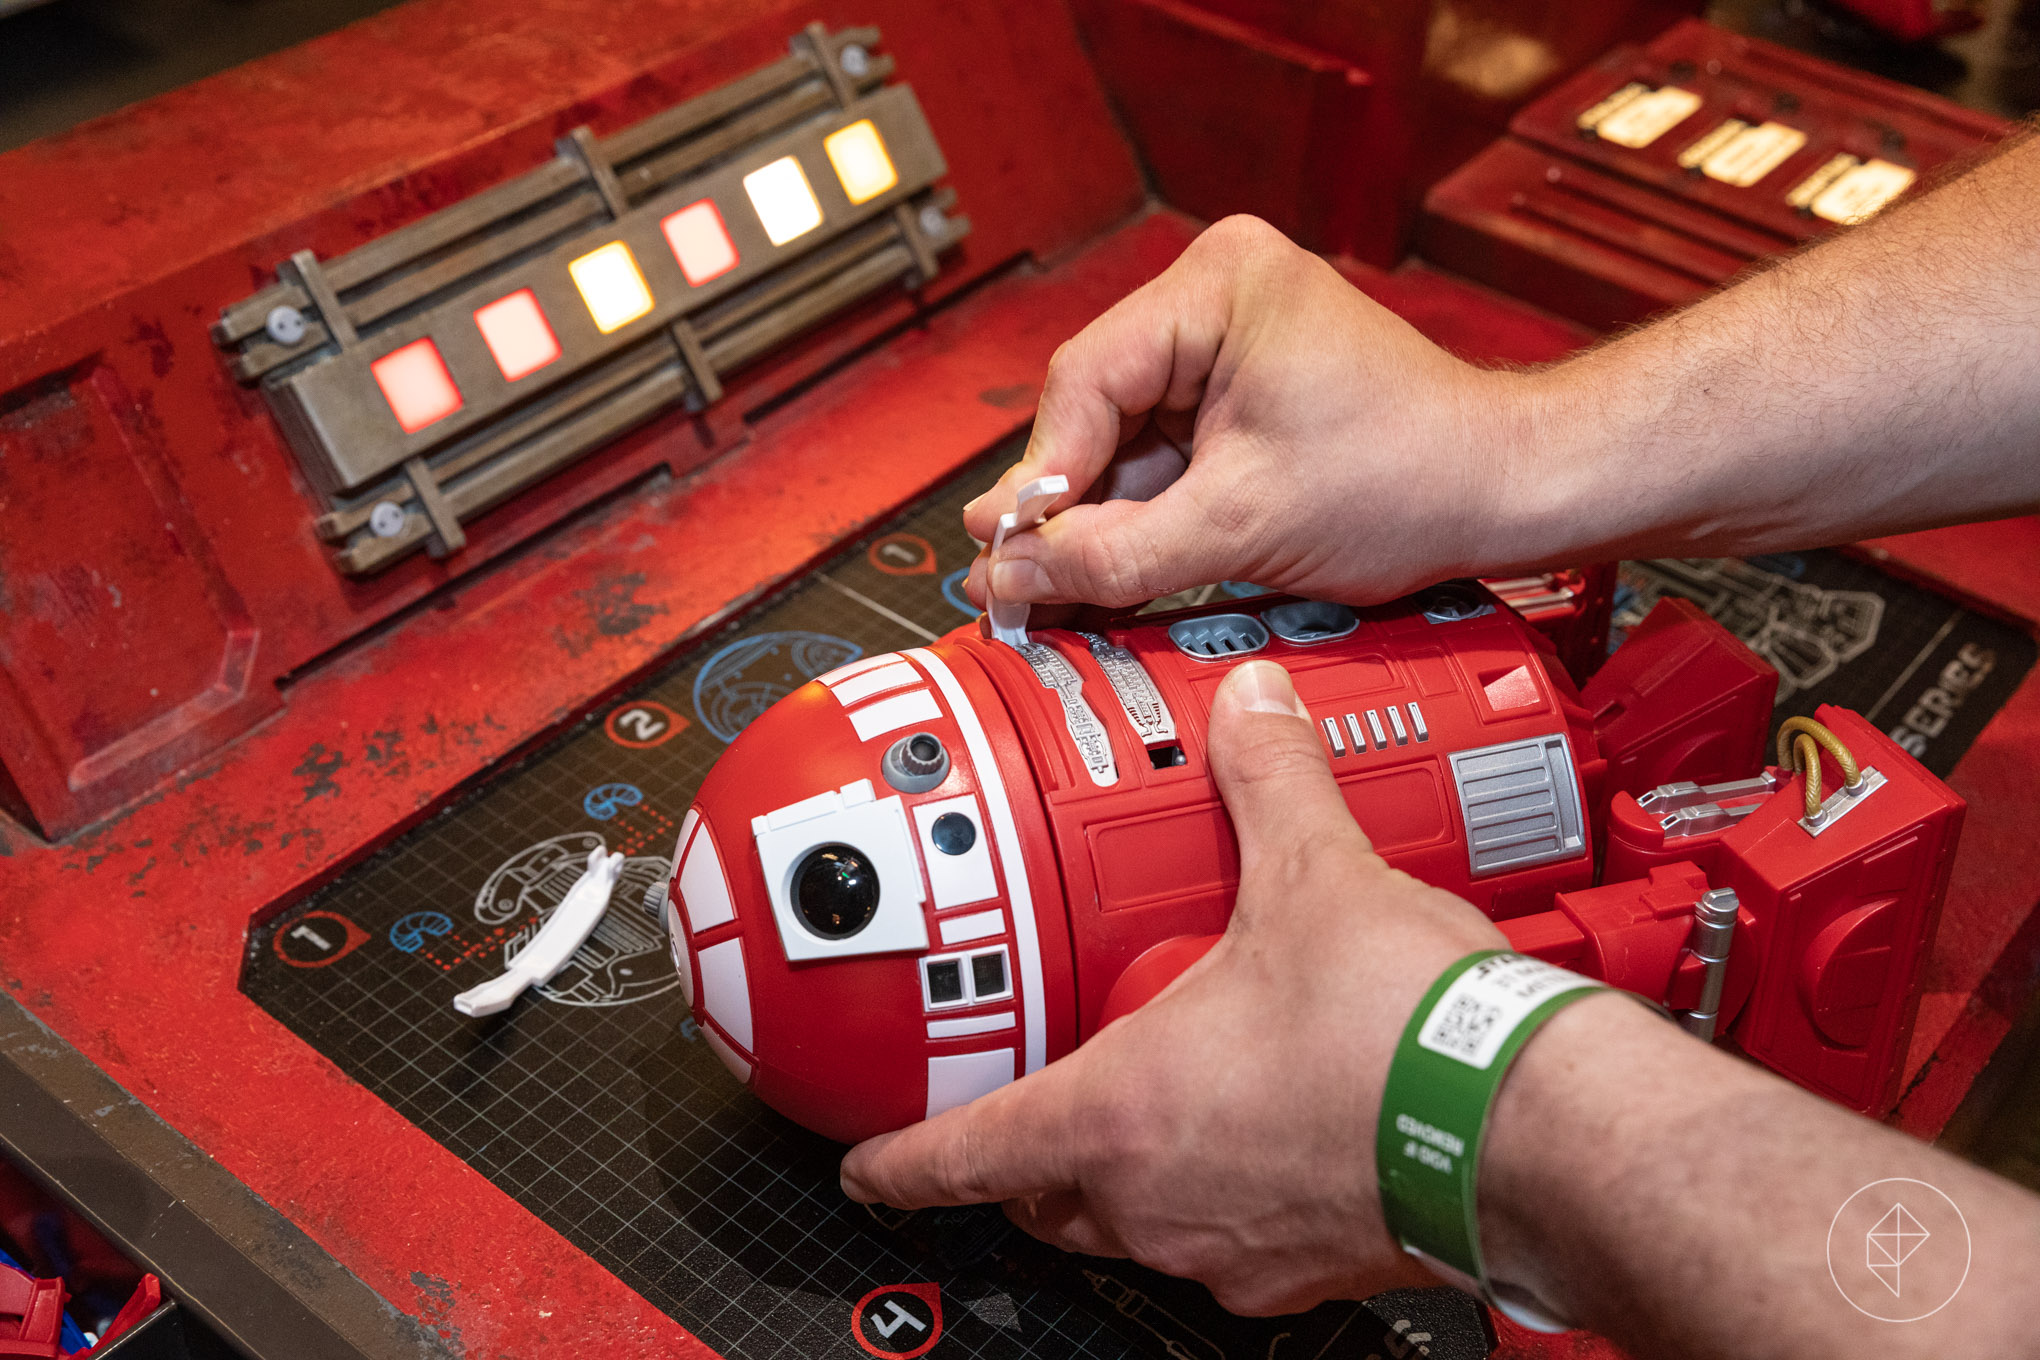 Star Wars Land's custom droid-building experience requires some strategy